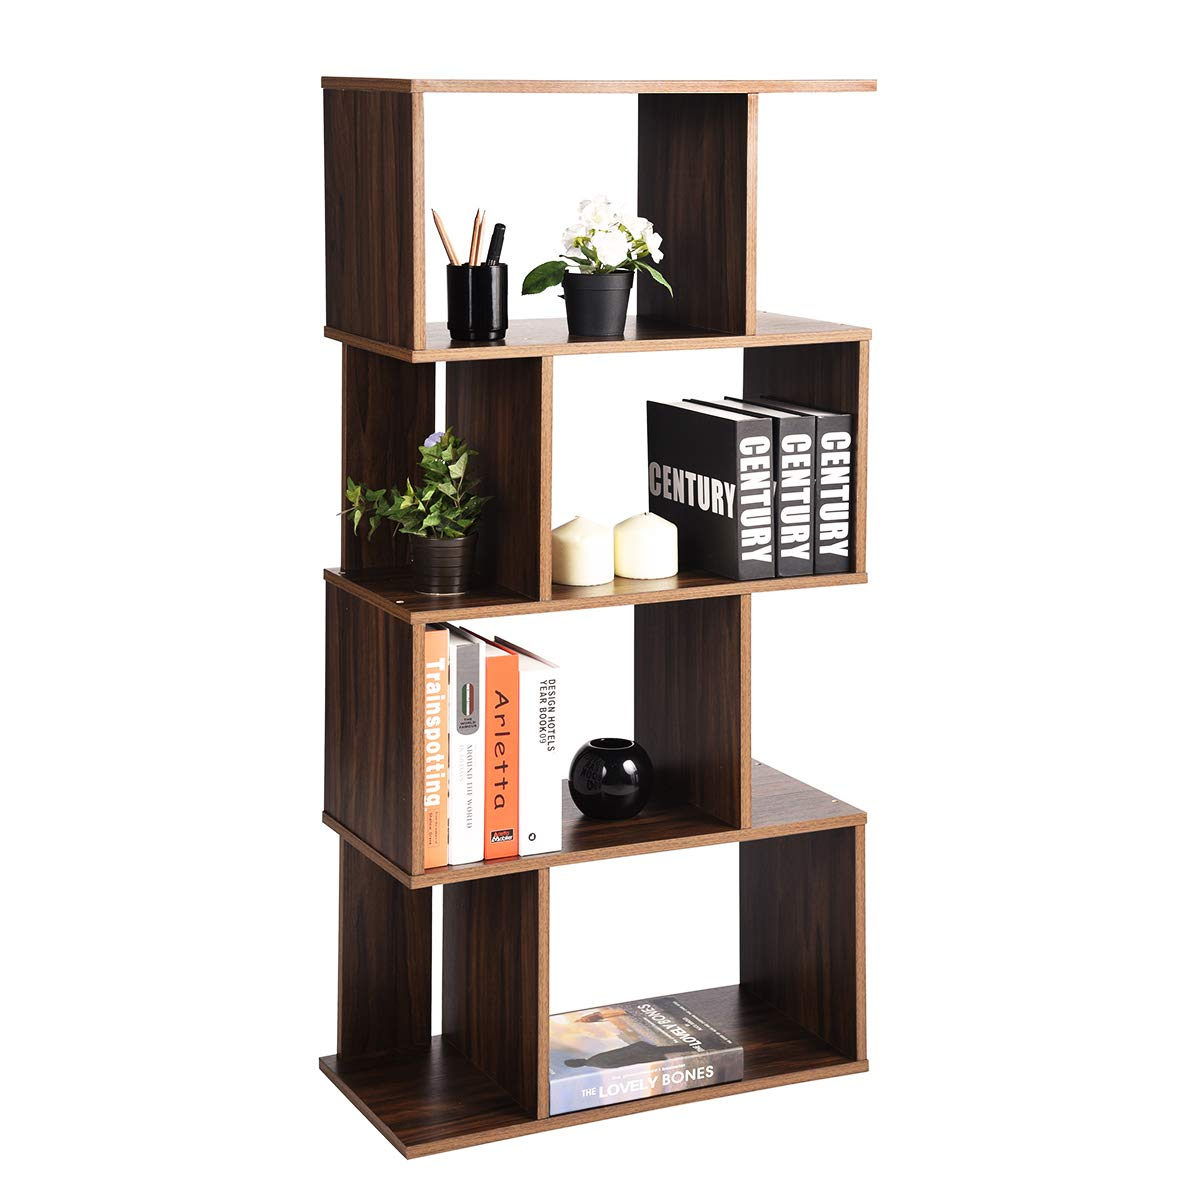 Geometric Industrial Bookshelf Home Office Bookcase With 8